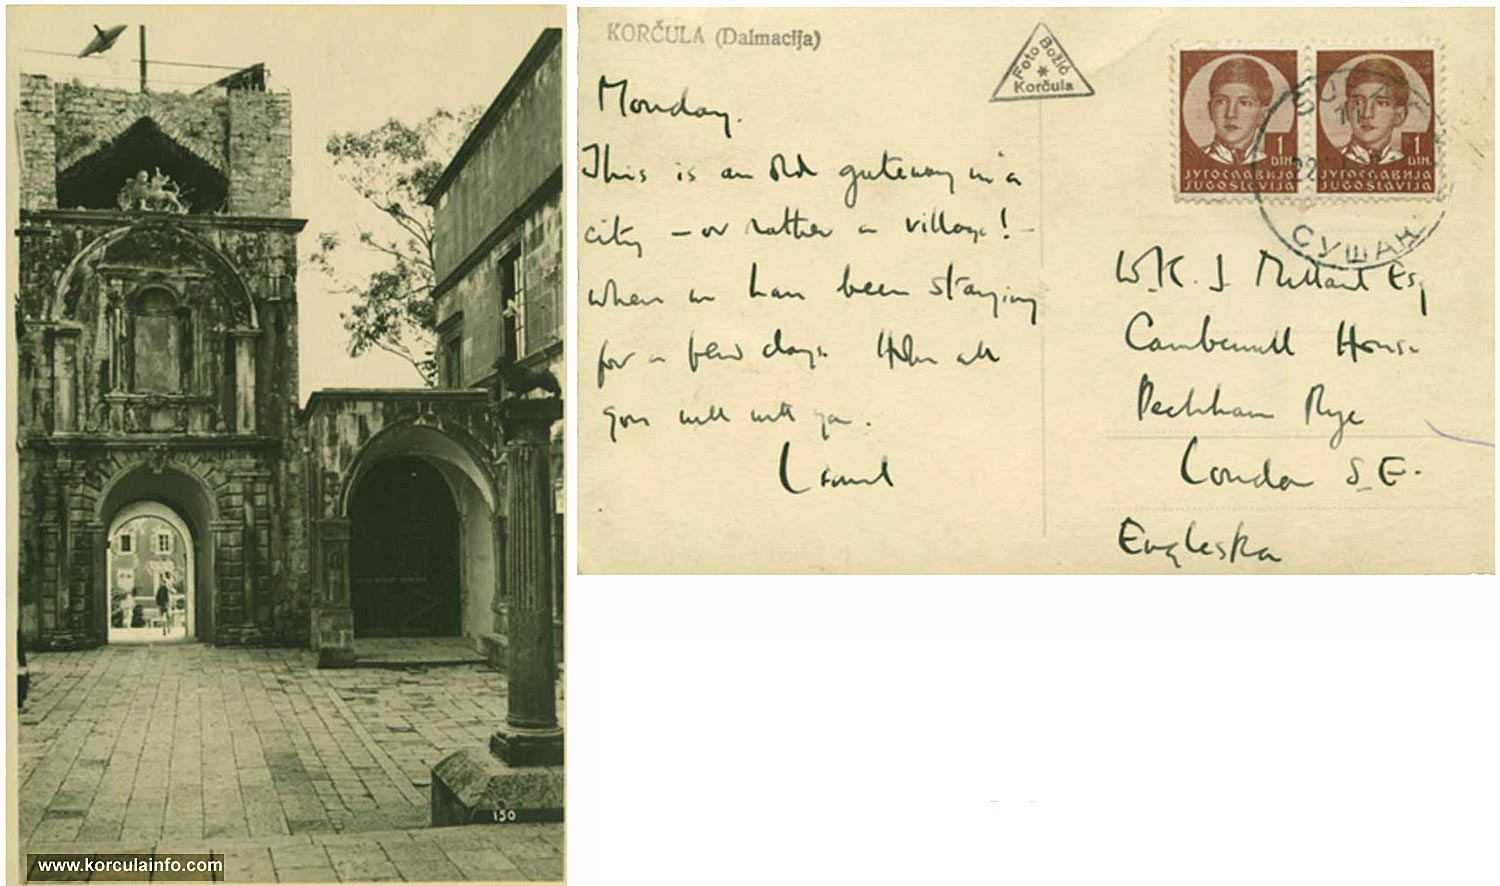 Postcard from 1930s